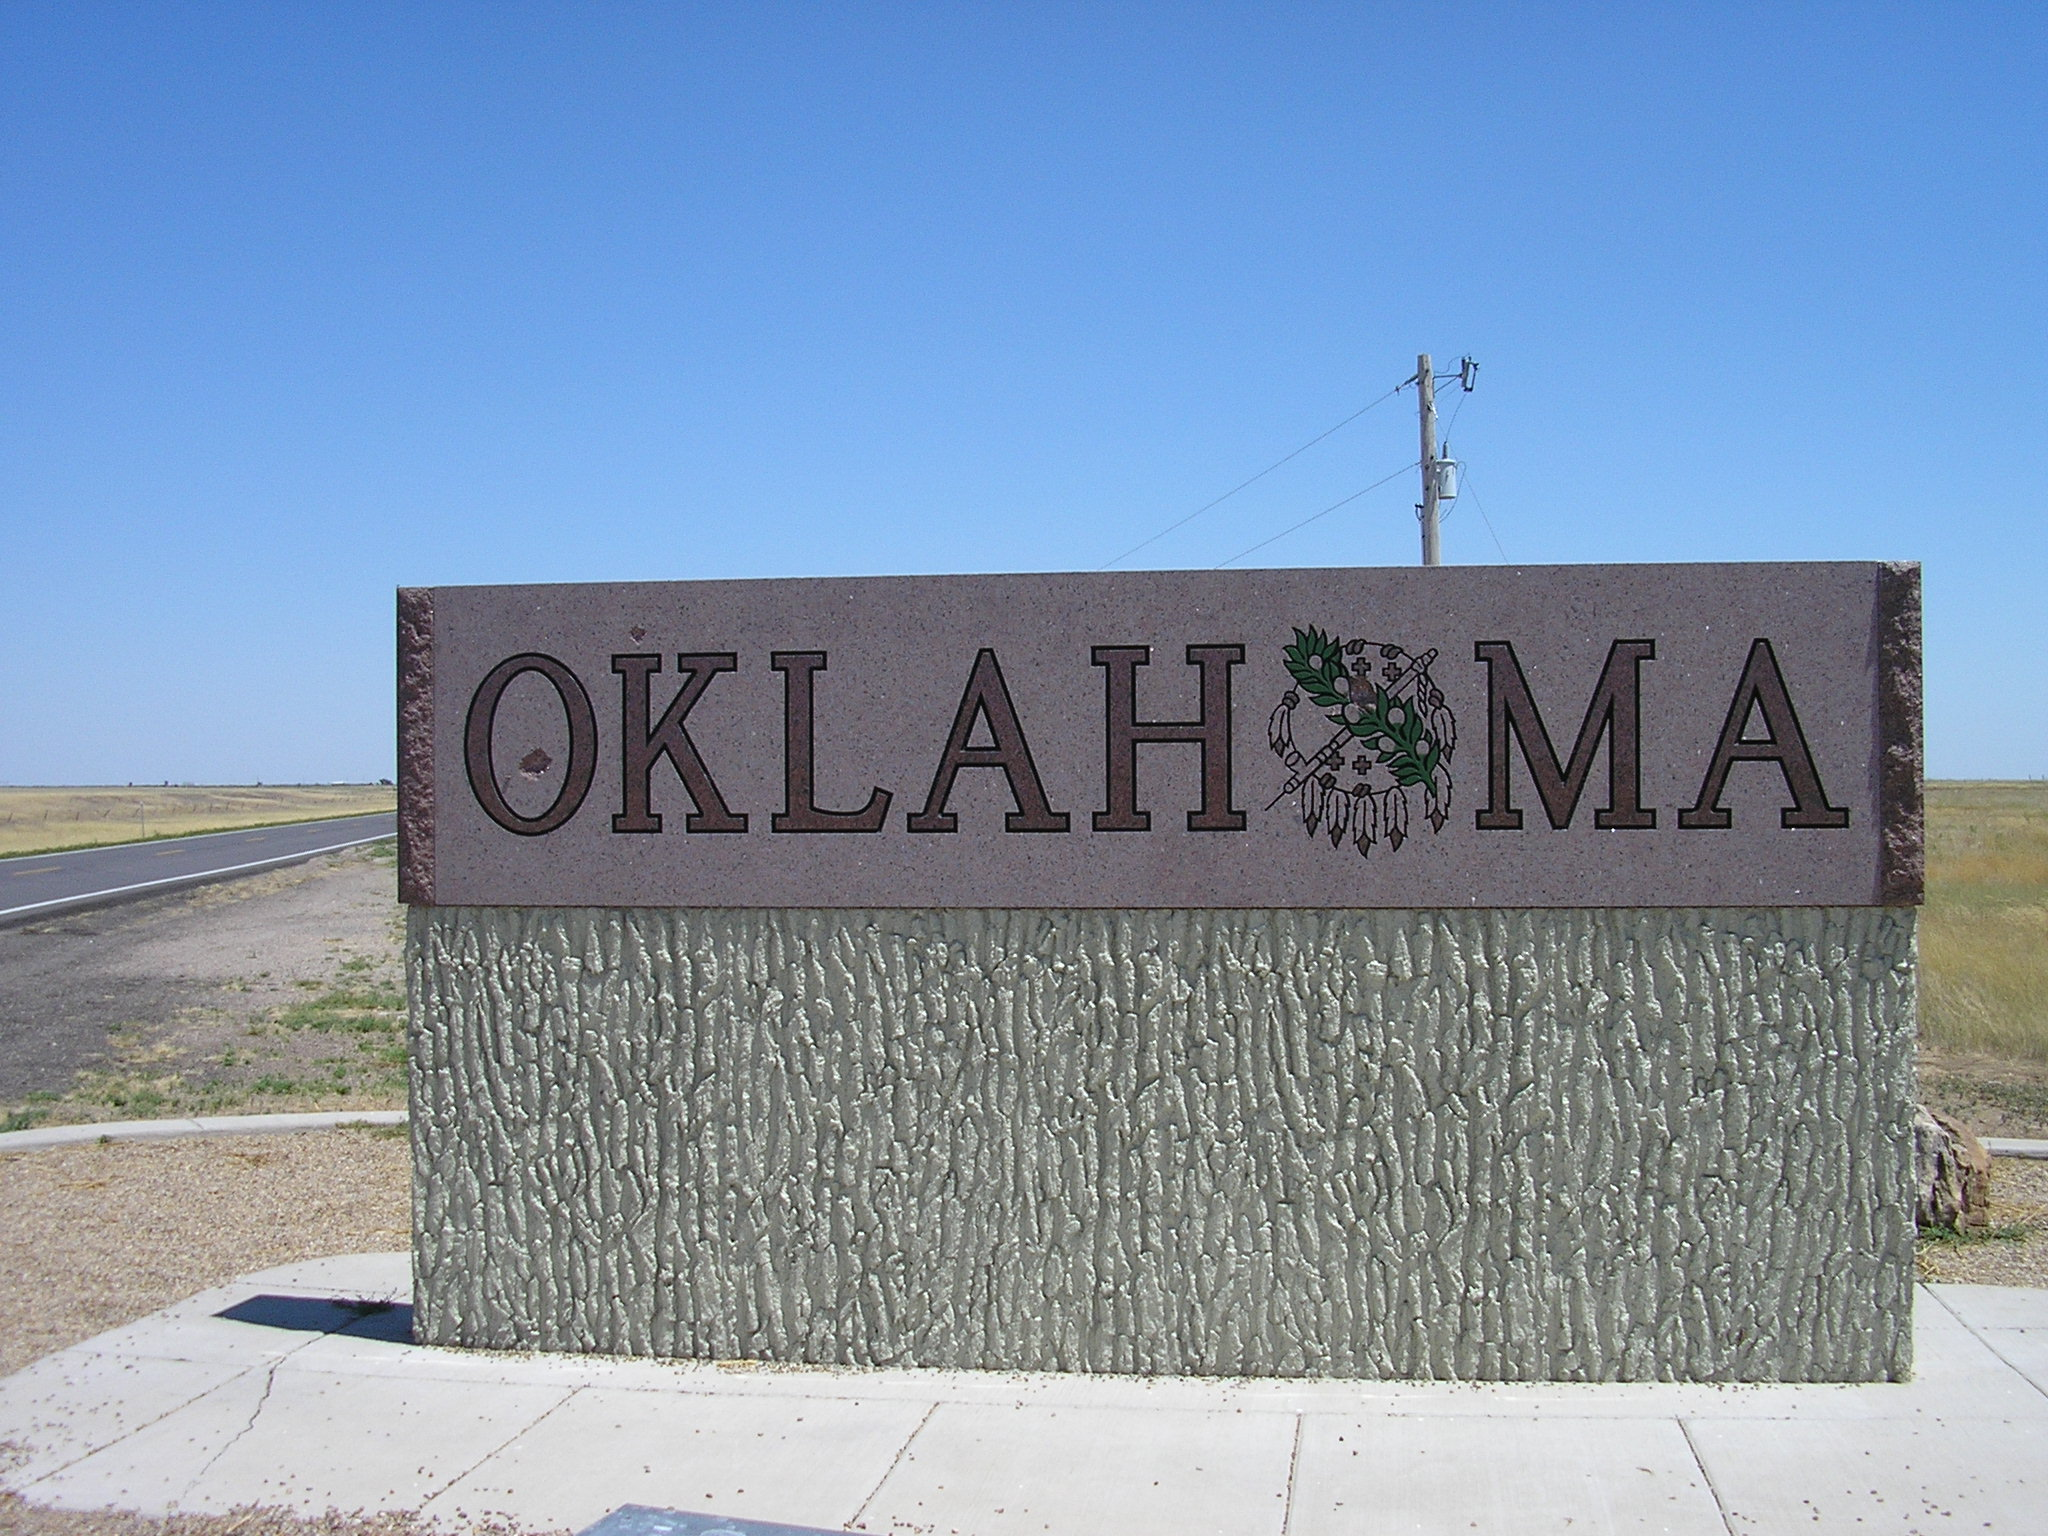 The state's high plains stretch behind a greeting sign in the Oklahoma Panhandle.